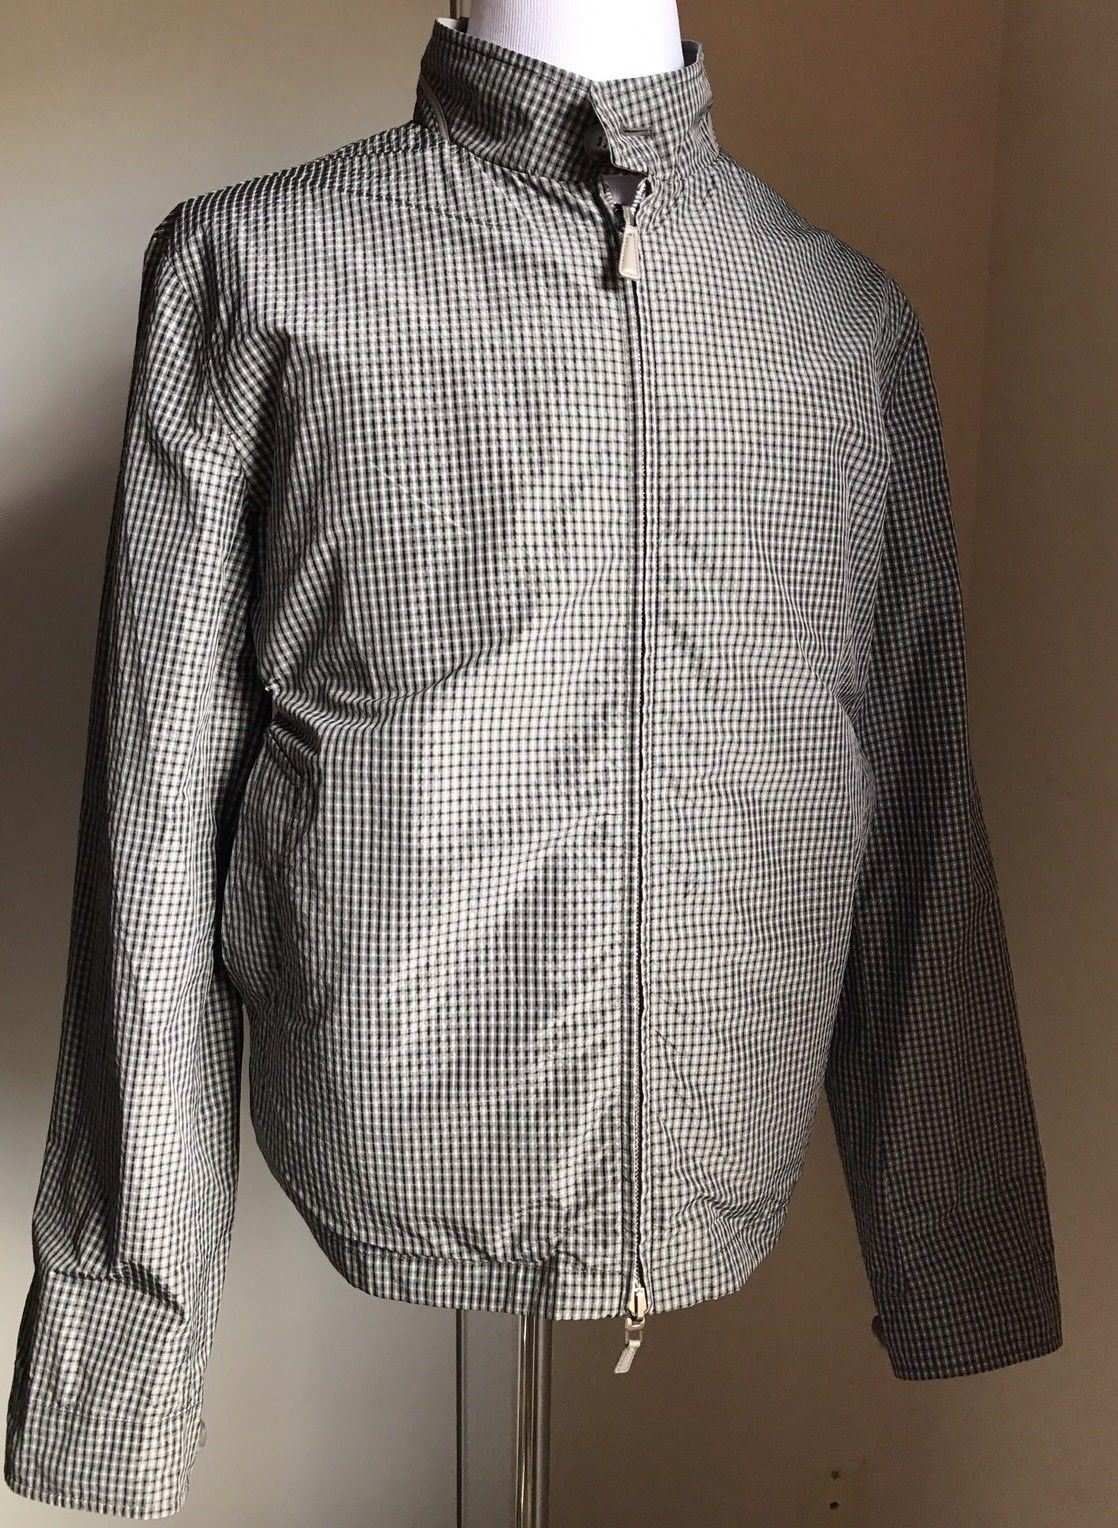 New $1995 Ermenegildo Zegna 2 Sided Jacket Silver/SLD 48 US ( 58 Eur )Italy